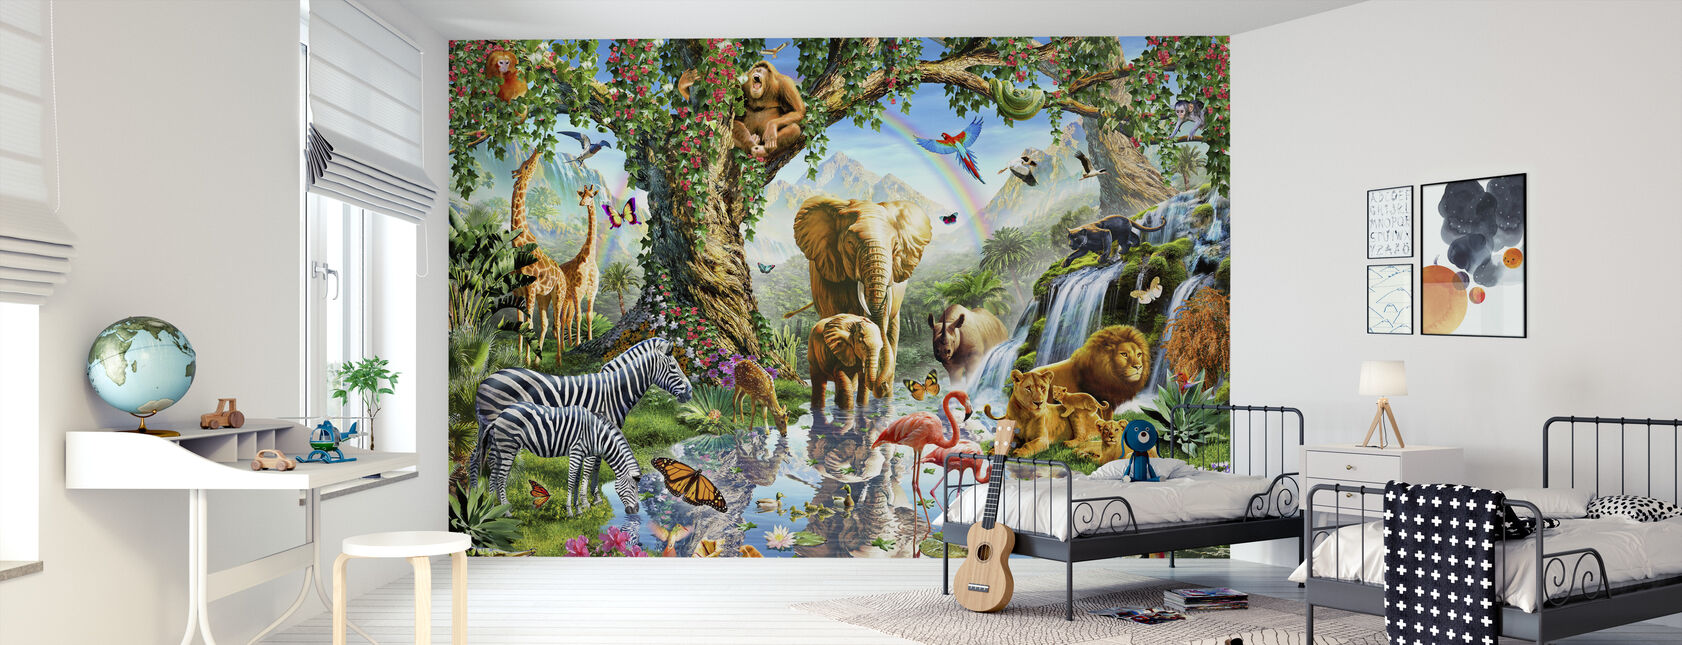 Jungle Lake met wilde dieren - Behang - Kinderkamer